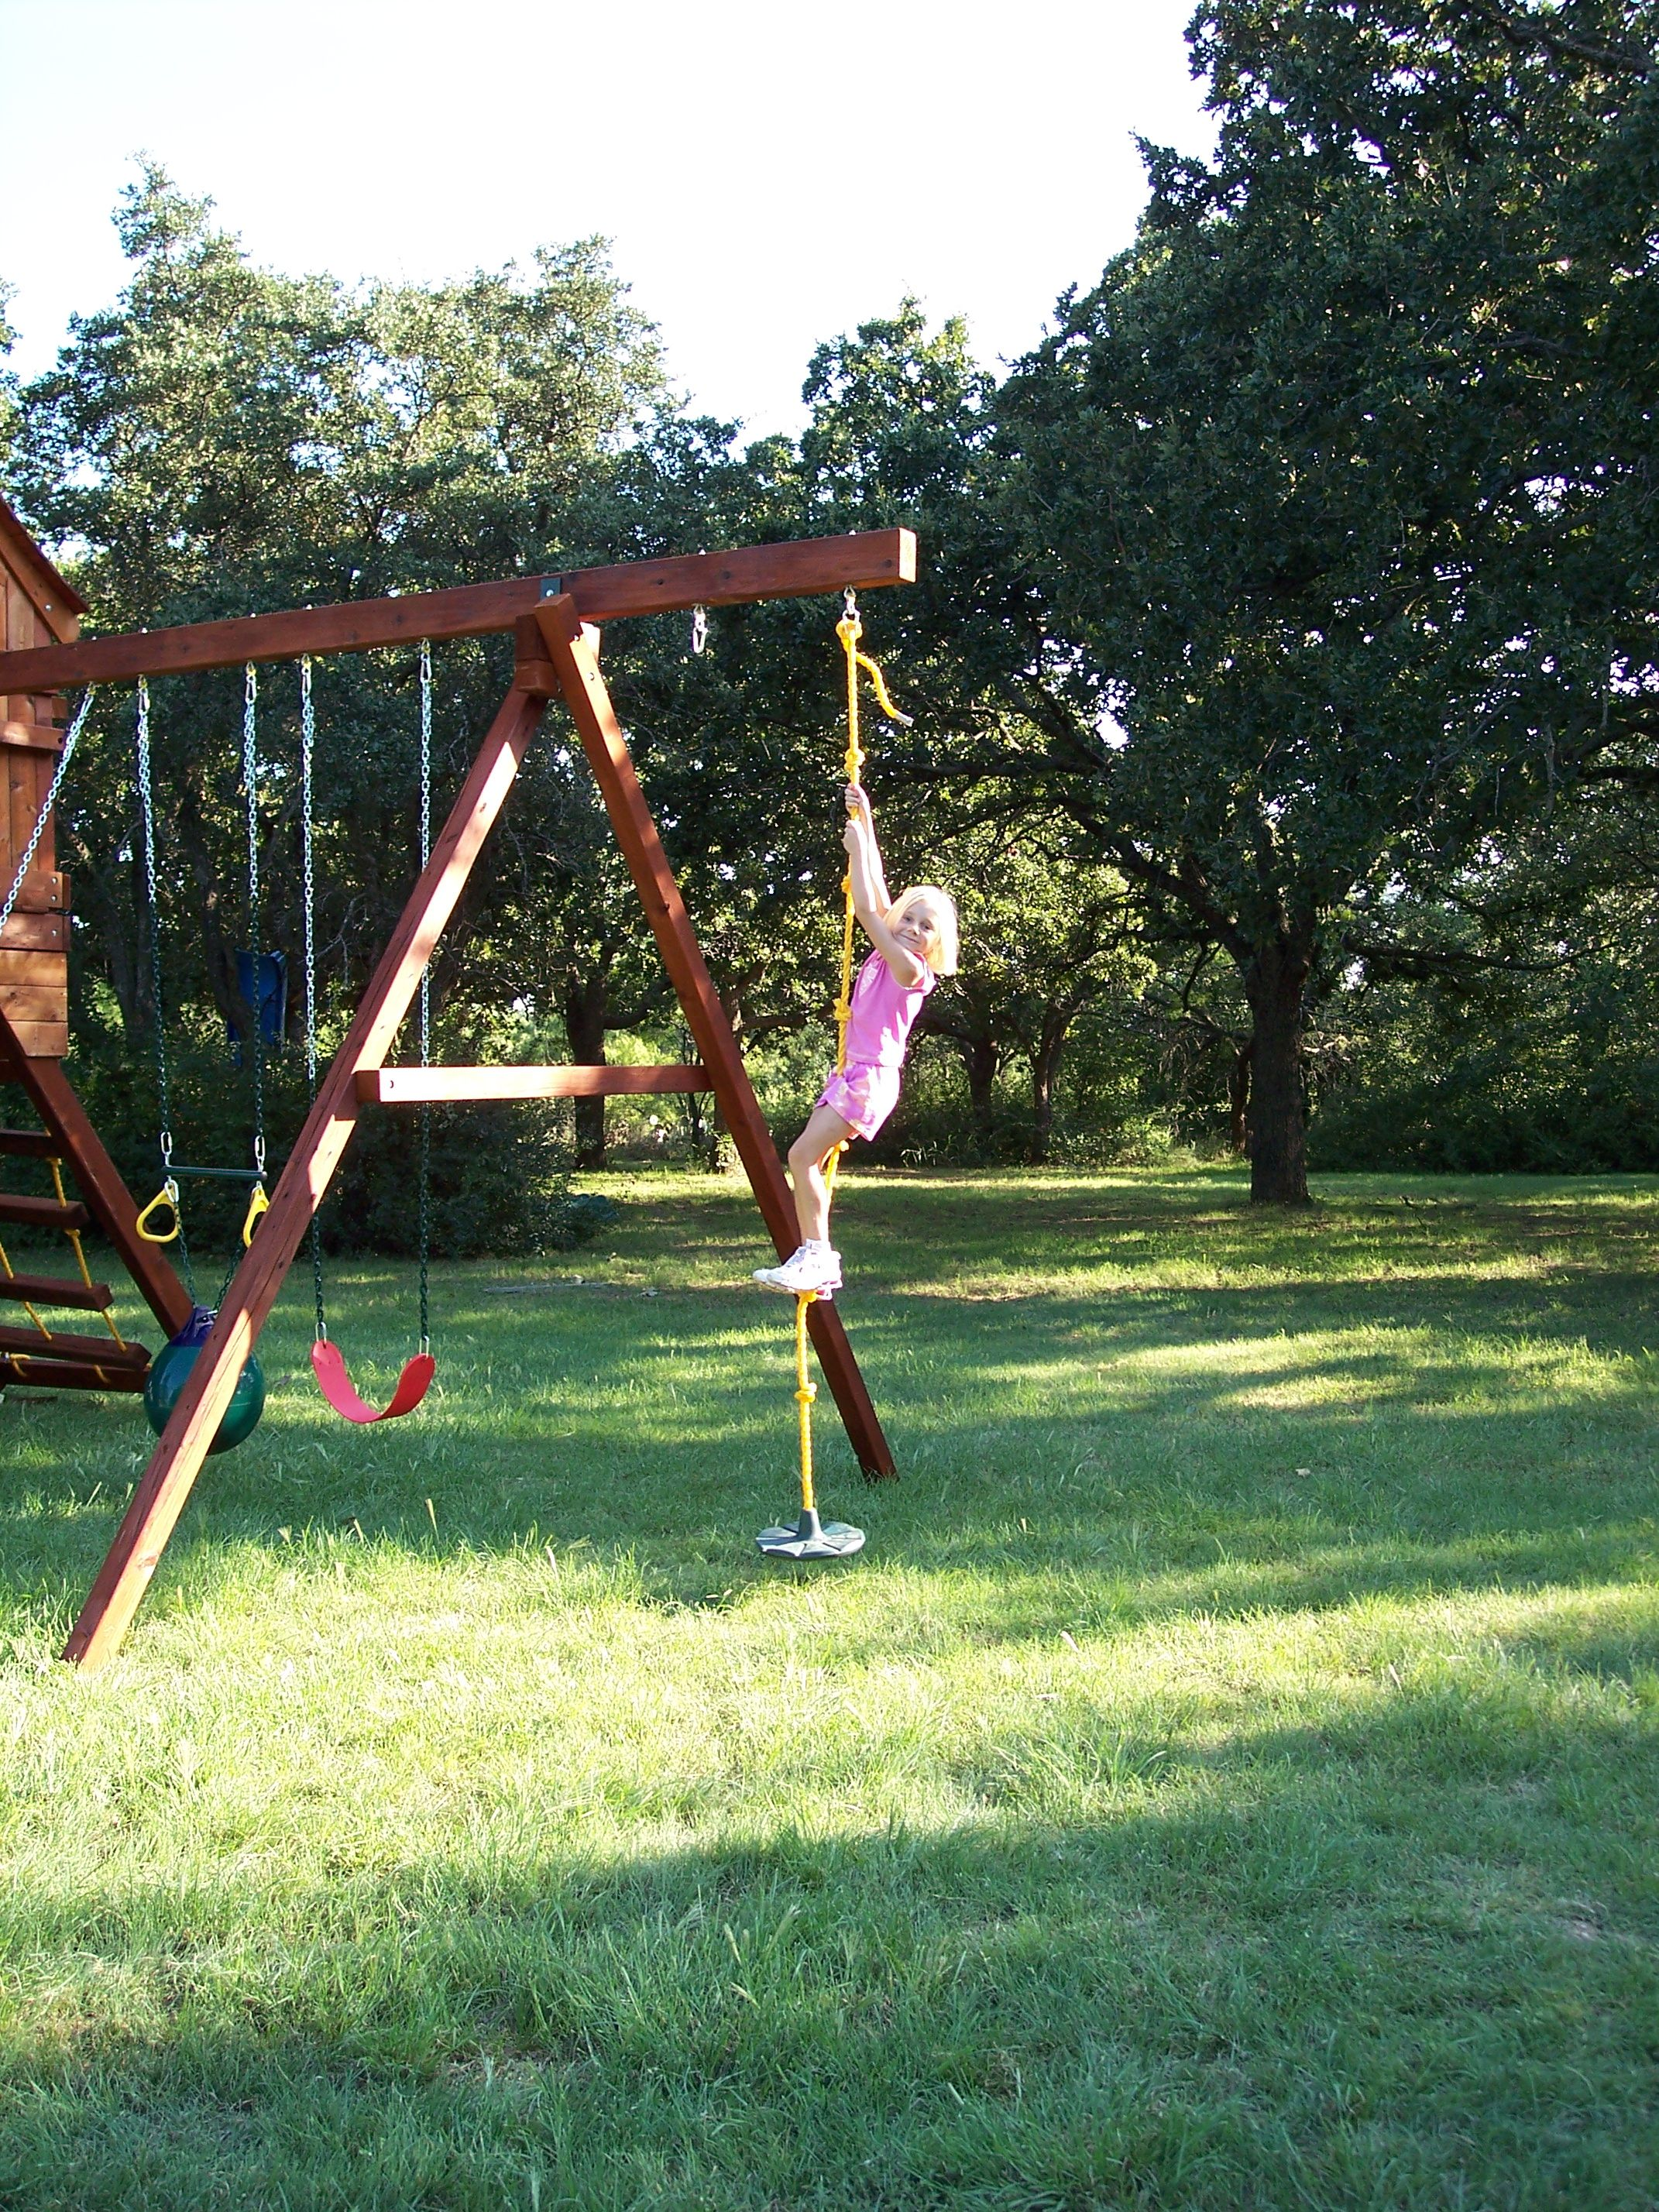 Daisy Disc With Knotted Rope Is The Perfect Swing Addition To Your Backyard Playset Swing Set Or Tree Swing This Daisy Di Backyard Playset Swing Set Backyard